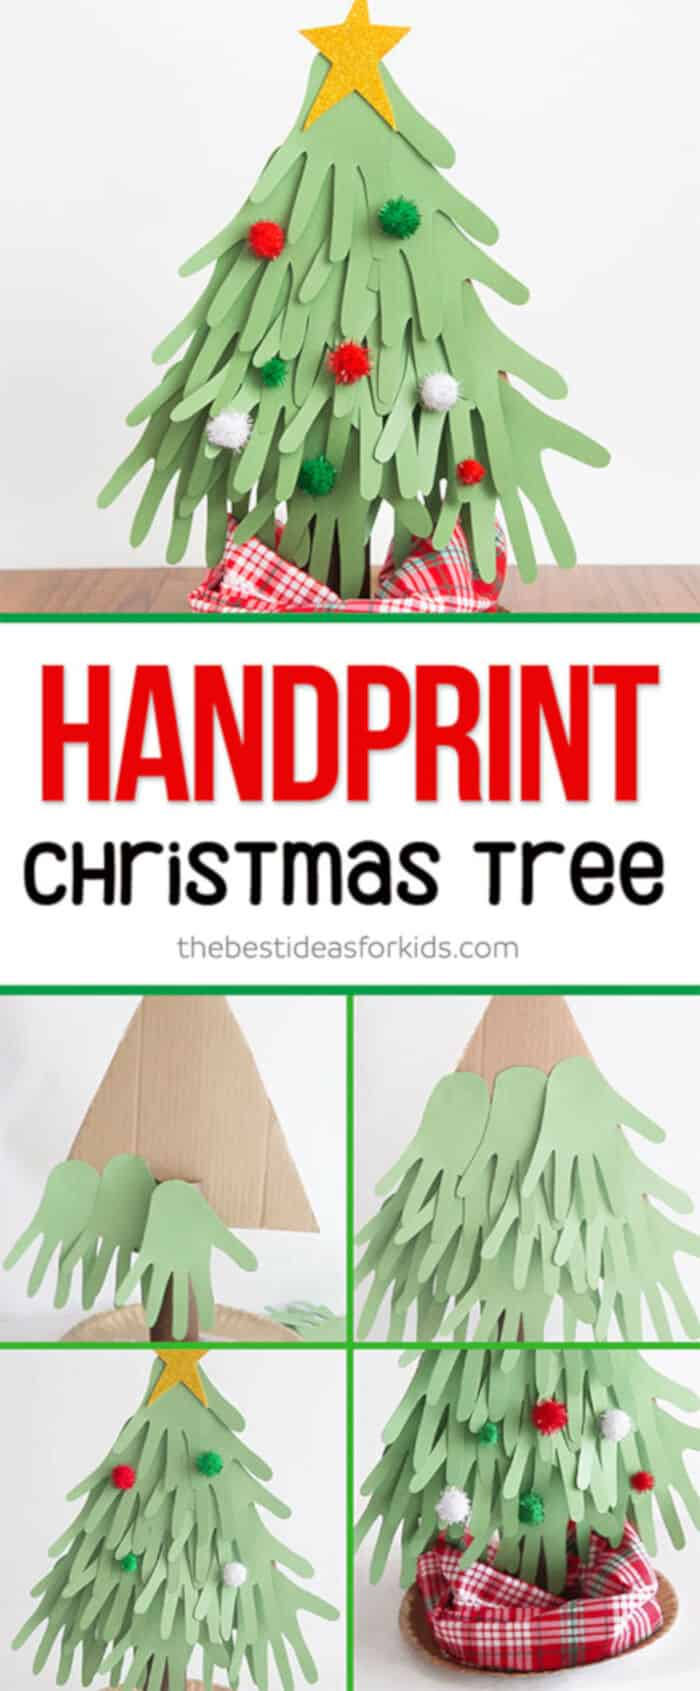 Handprint Christmas Tree by The Best Ideas for Kids